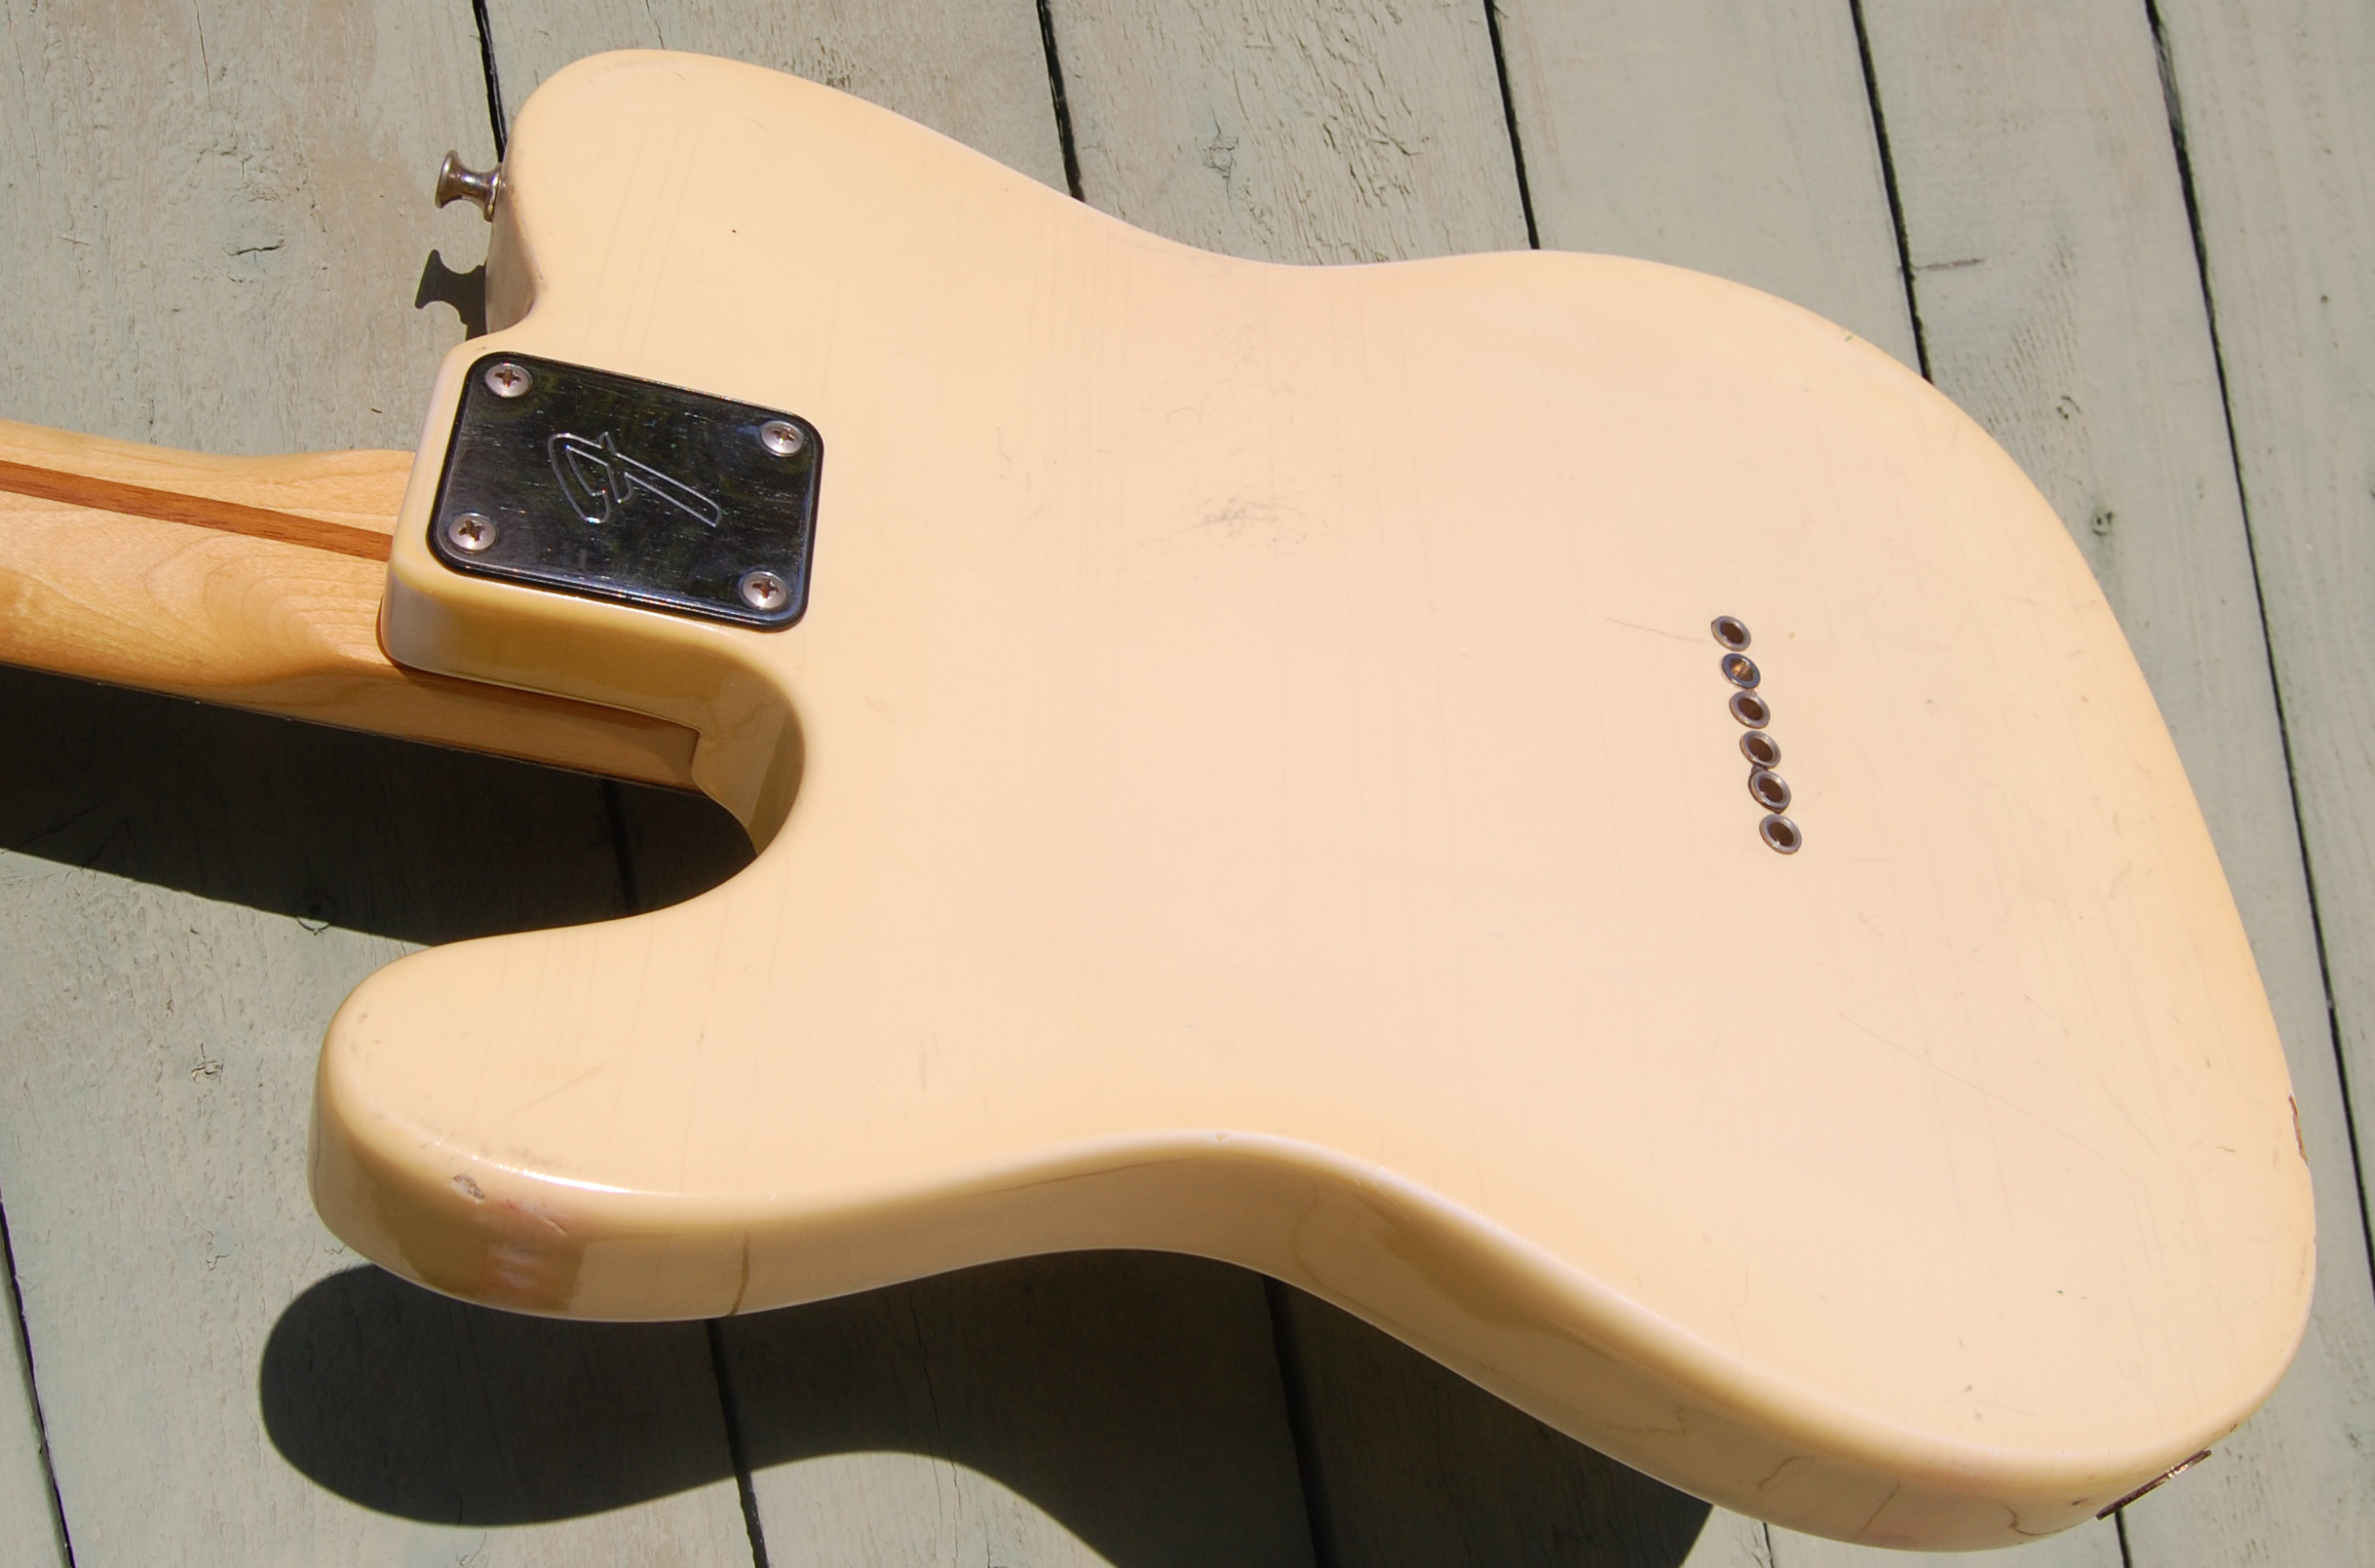 1978 Tele back and side